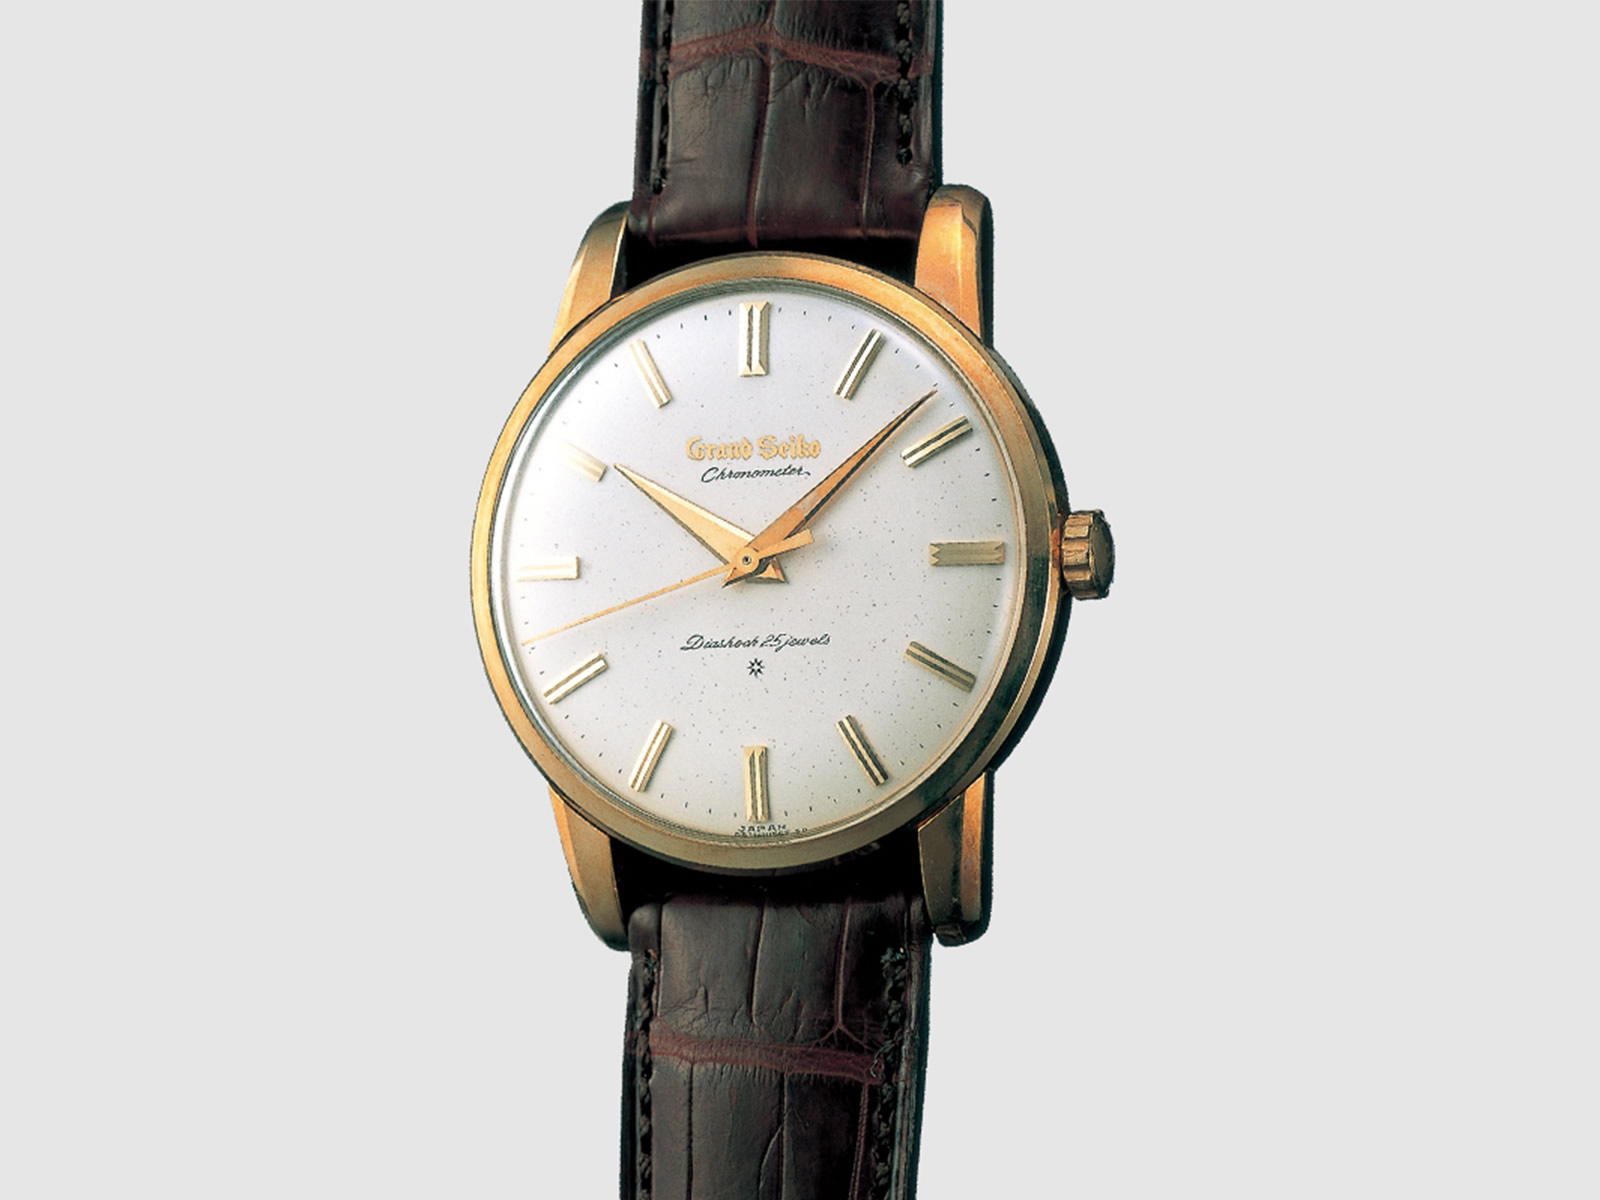 1960-the-first-grand-seiko-.jpg